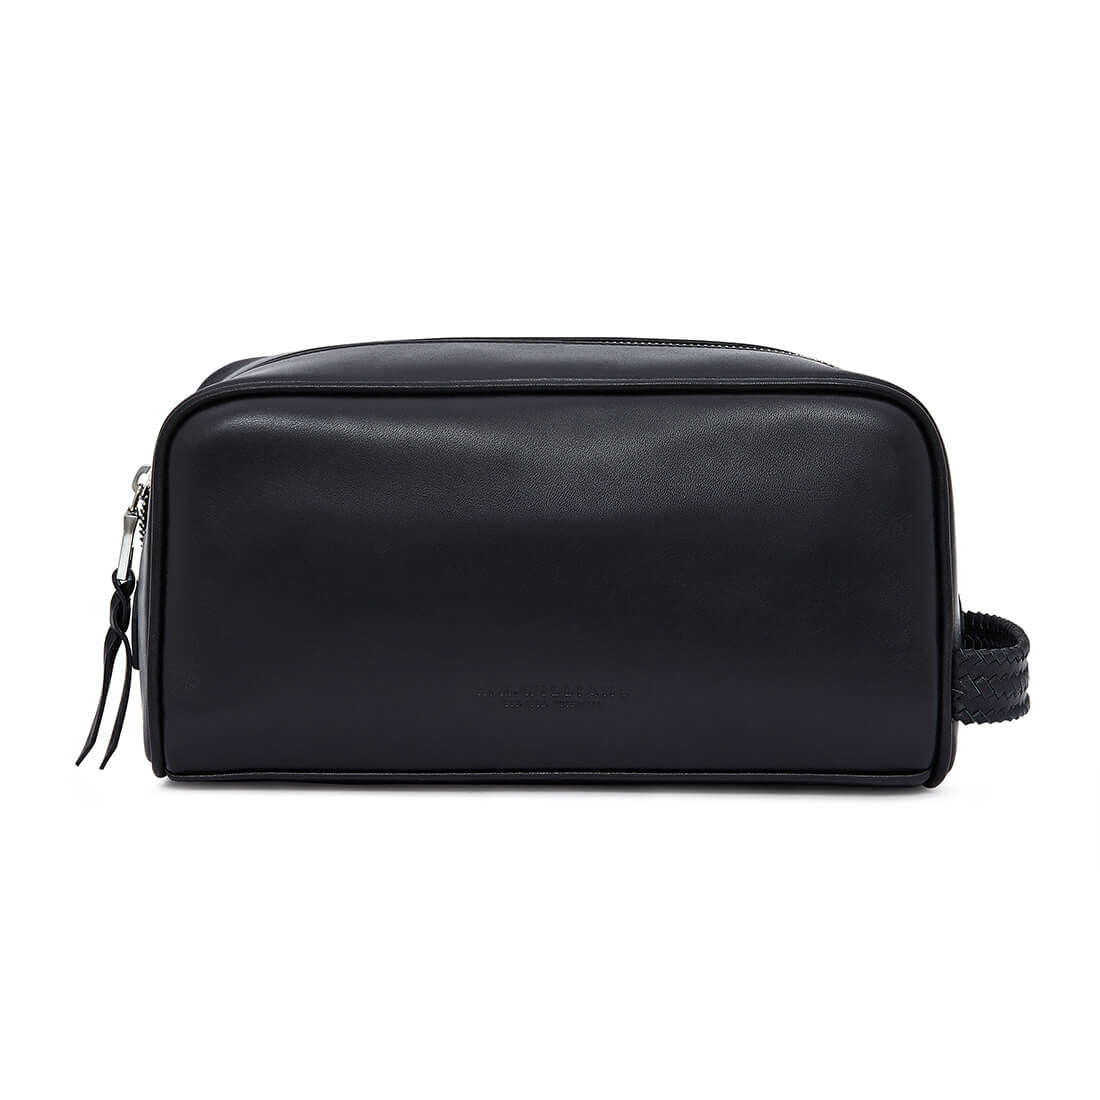 R.M.Williams City Wash Bag Black CHS0SCH020100